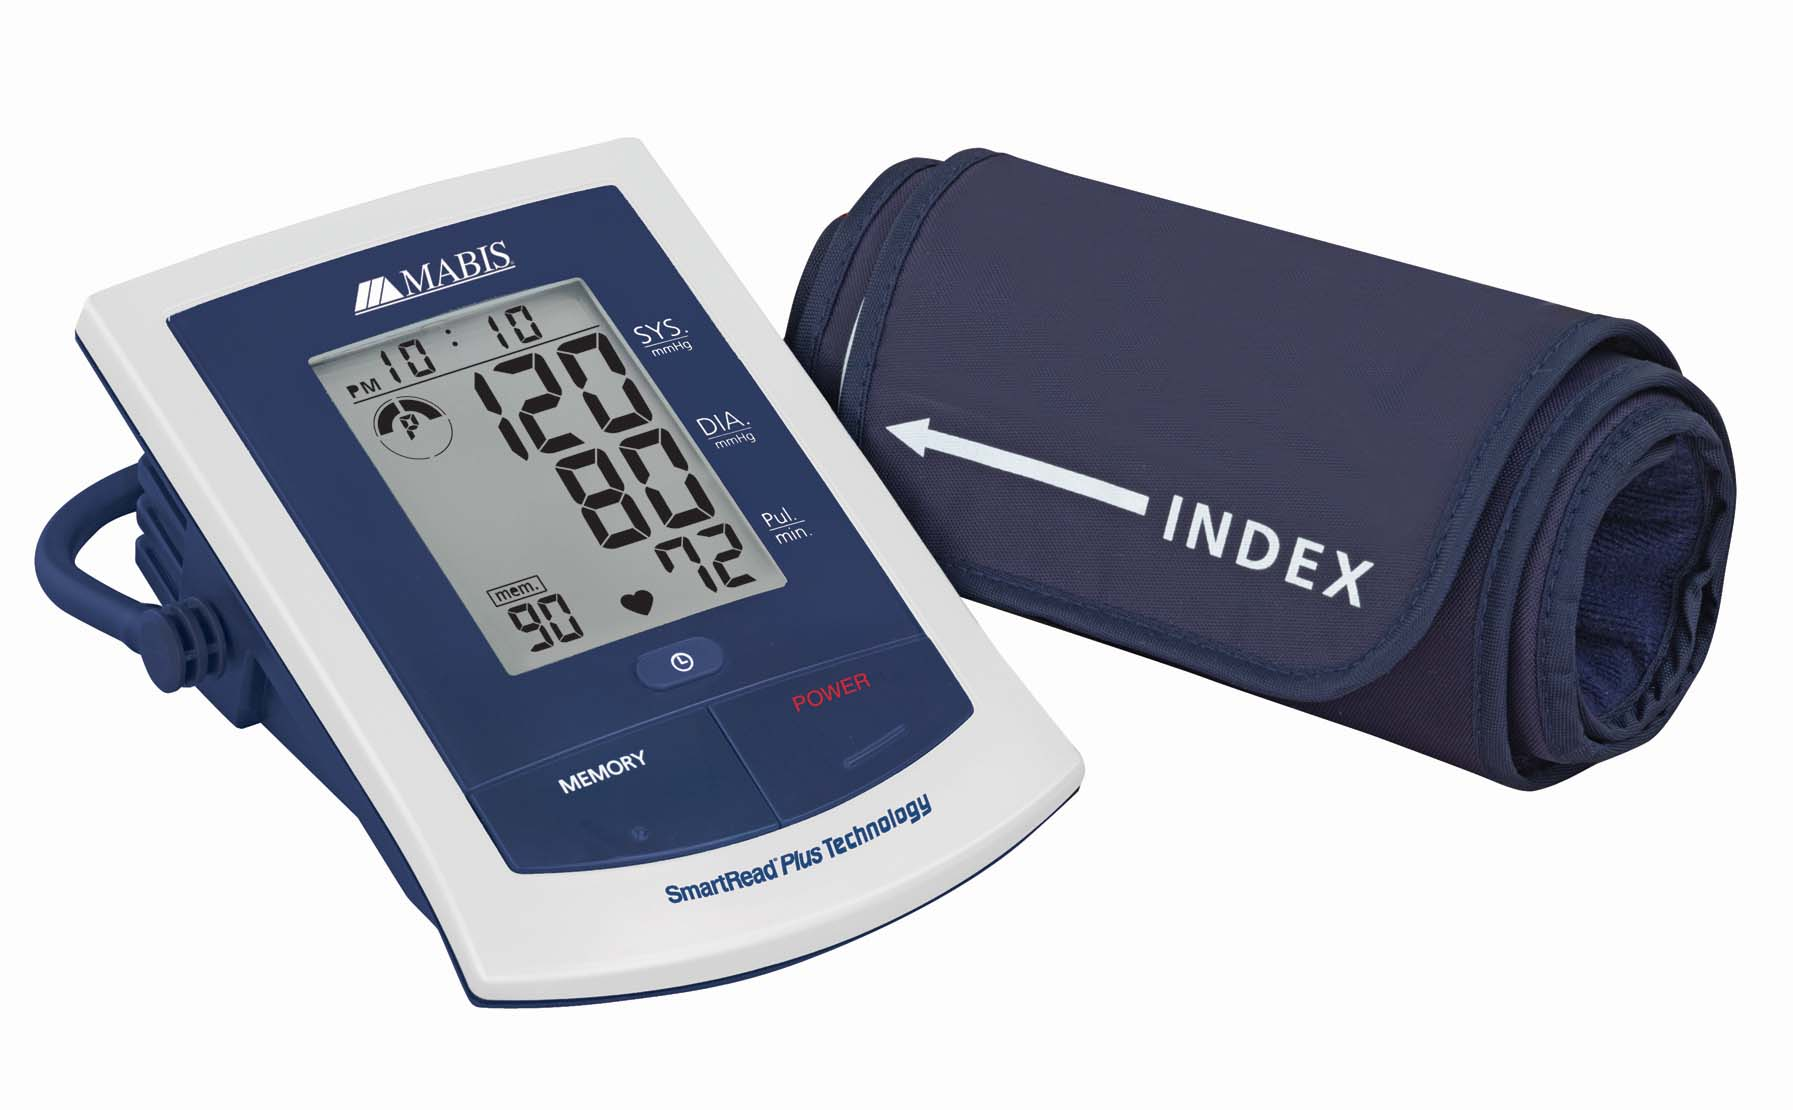 smartread-plus-automatic-digital-blood-pressure-monitor-04-342-000-lr.jpg